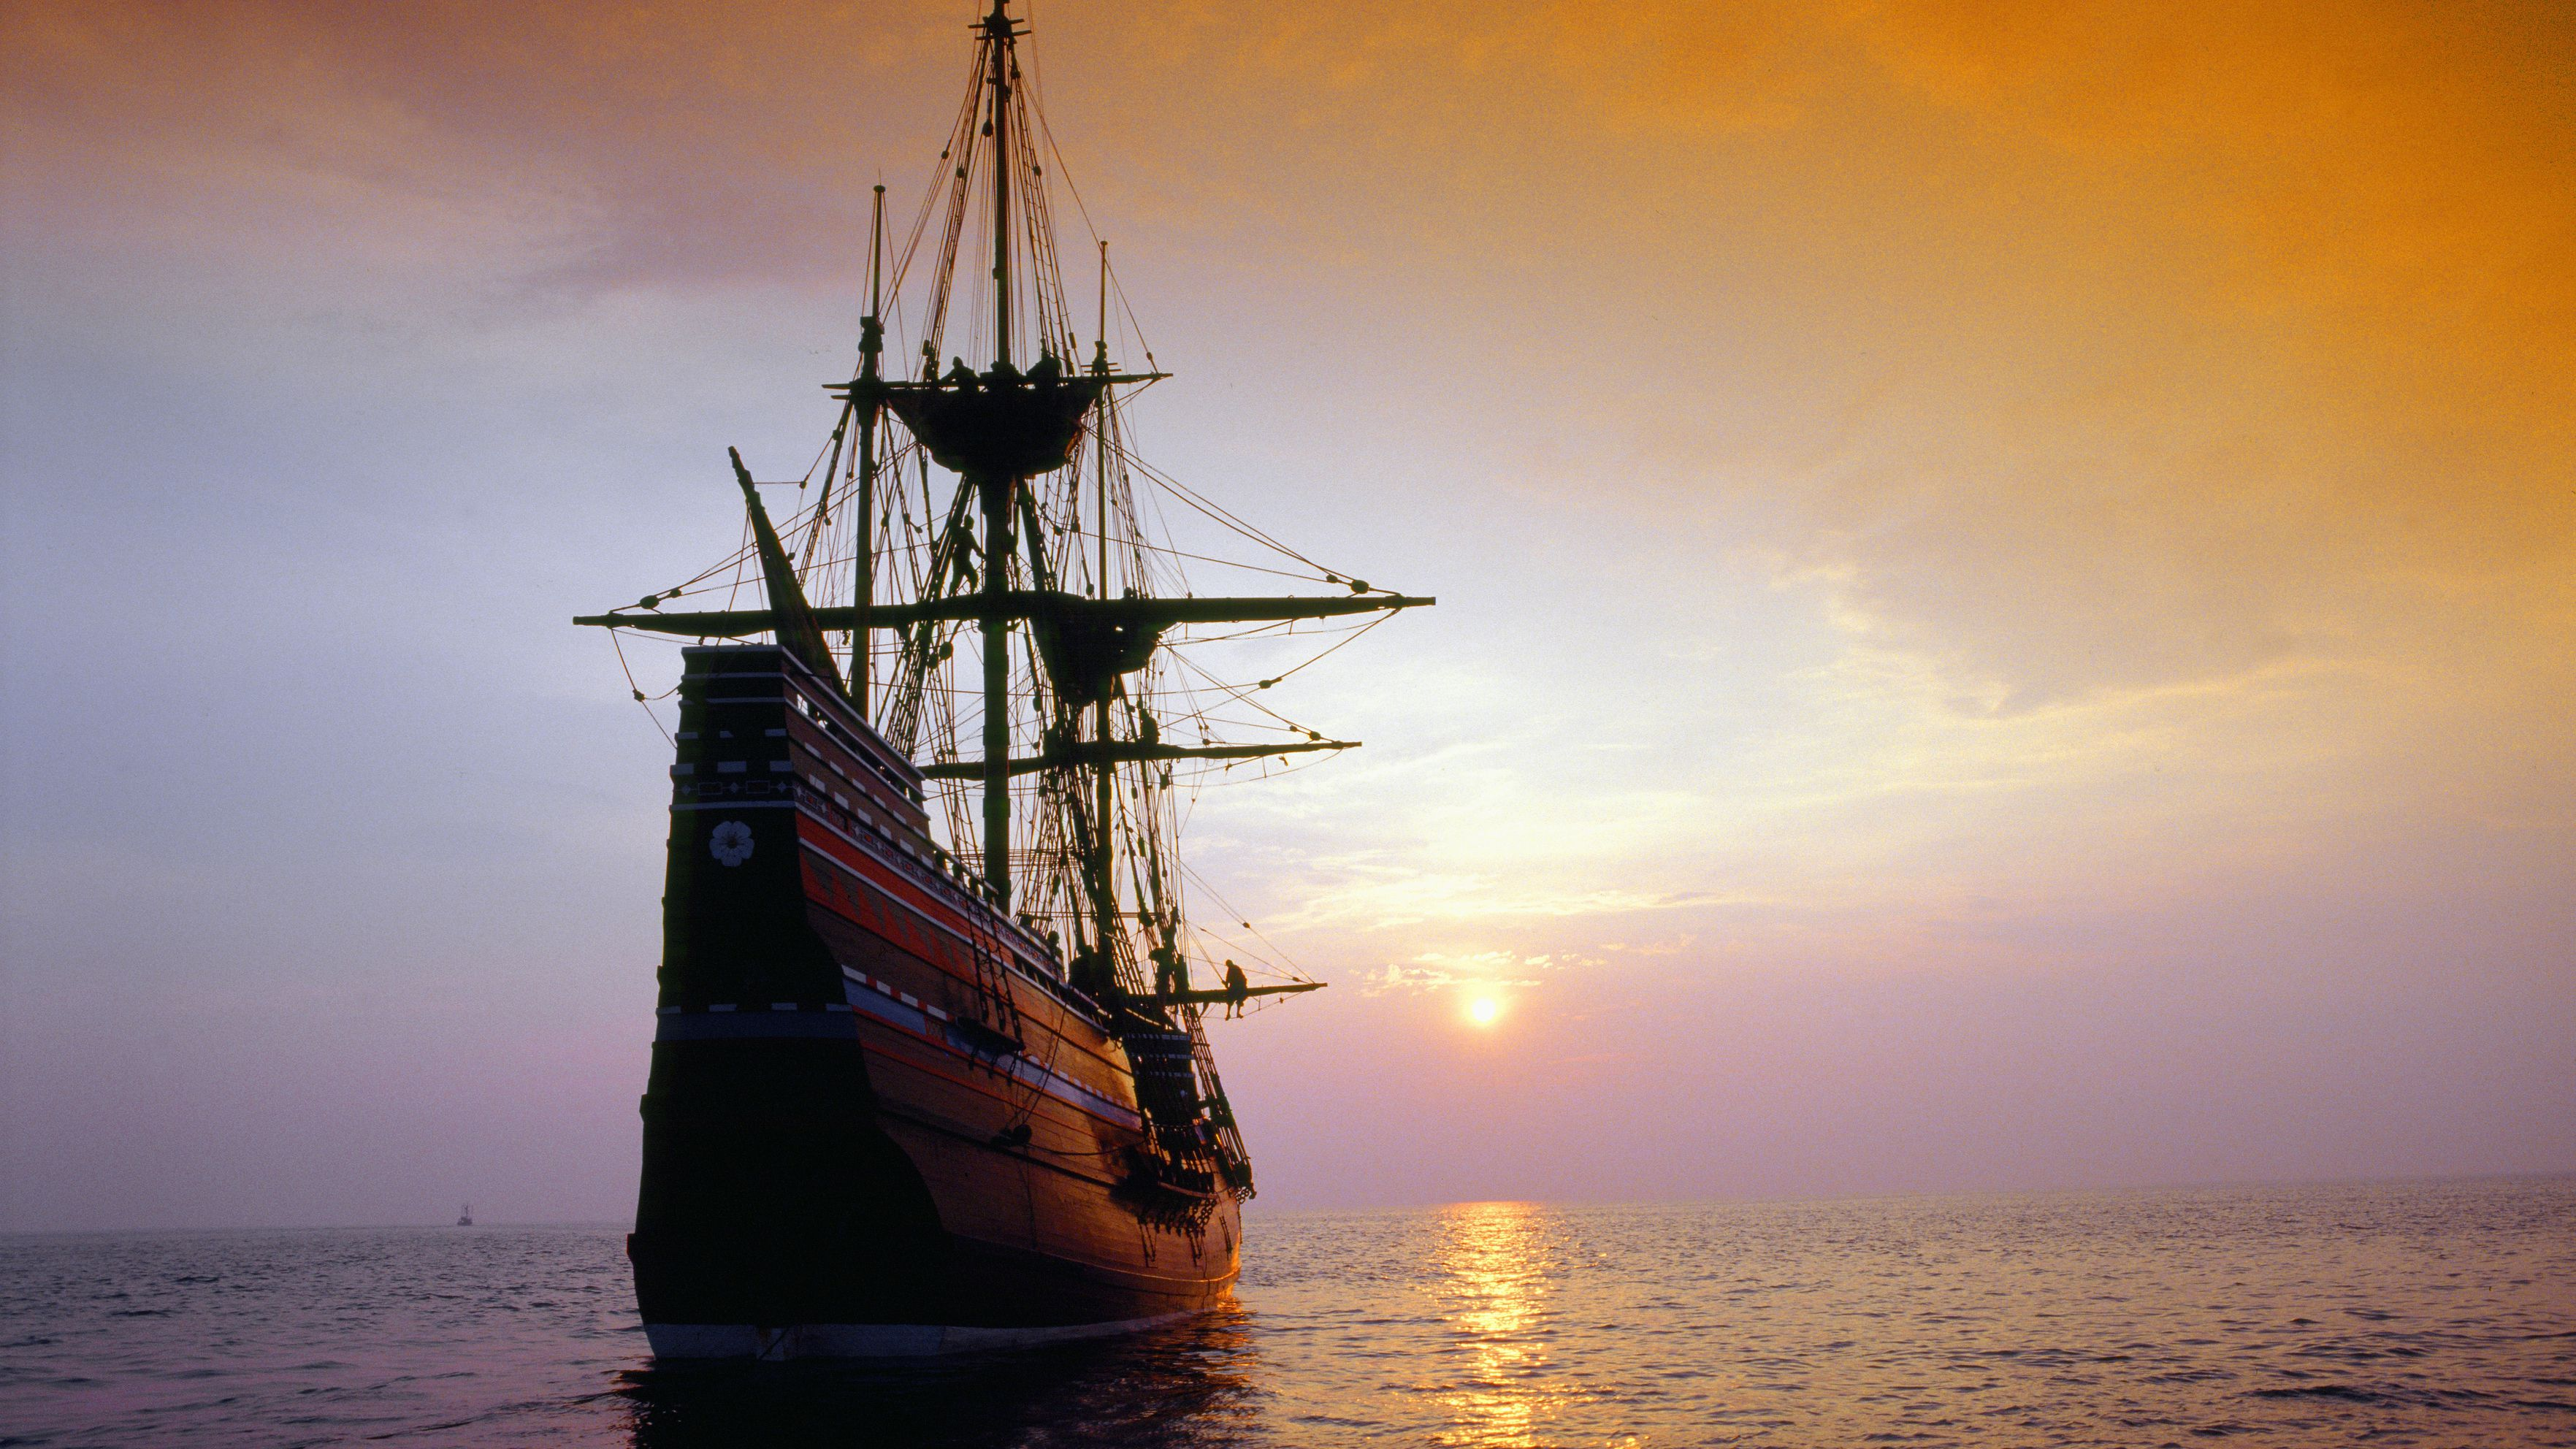 Pirate Ships - History and Culture